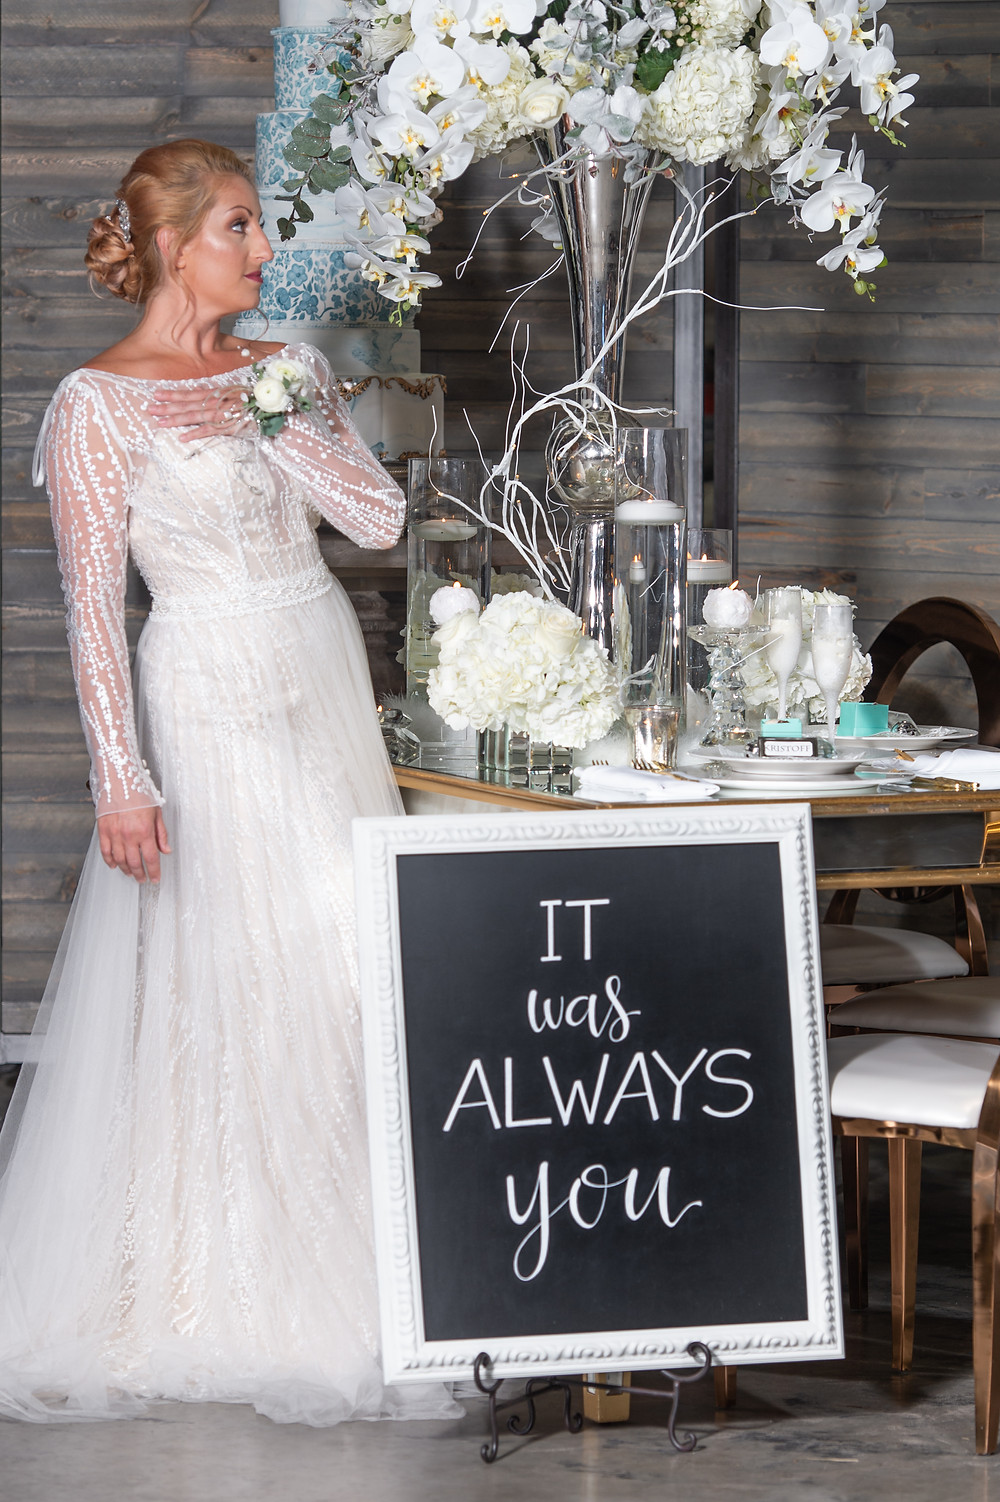 Model in white wedding dress with custom sign for displaying at wedding and floral arrangements